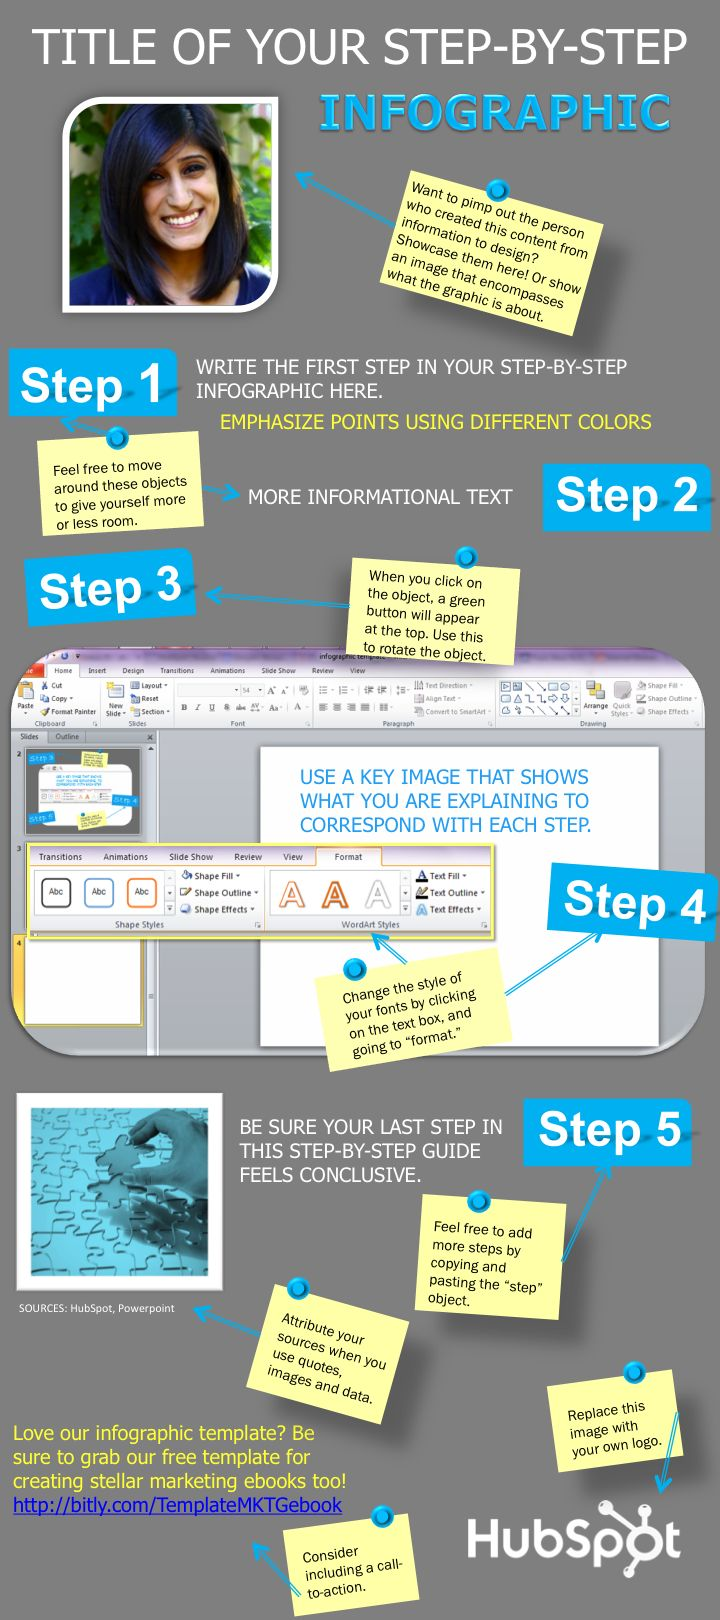 infographic template with PowerPointPowerpoint Templates, Beautiful Infographic, Social Media, Create Infographic, Infographic Style, Infographic Awesome, Simple Guide, Awesome Infographic, Infographic Templates